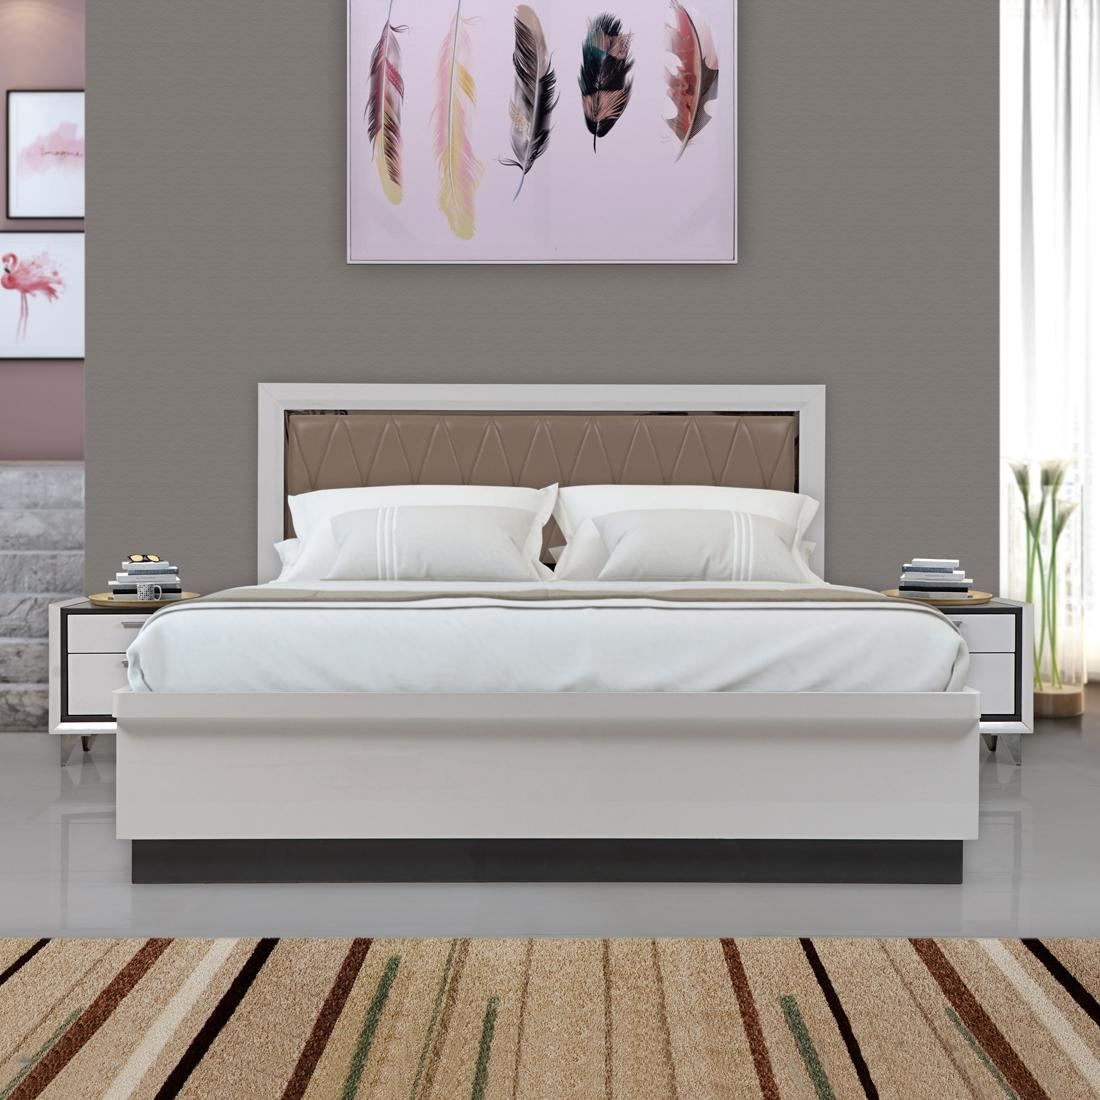 Buy Boston Engineerwood Queen Bed With Full Hydraulic Storage White Online Evok